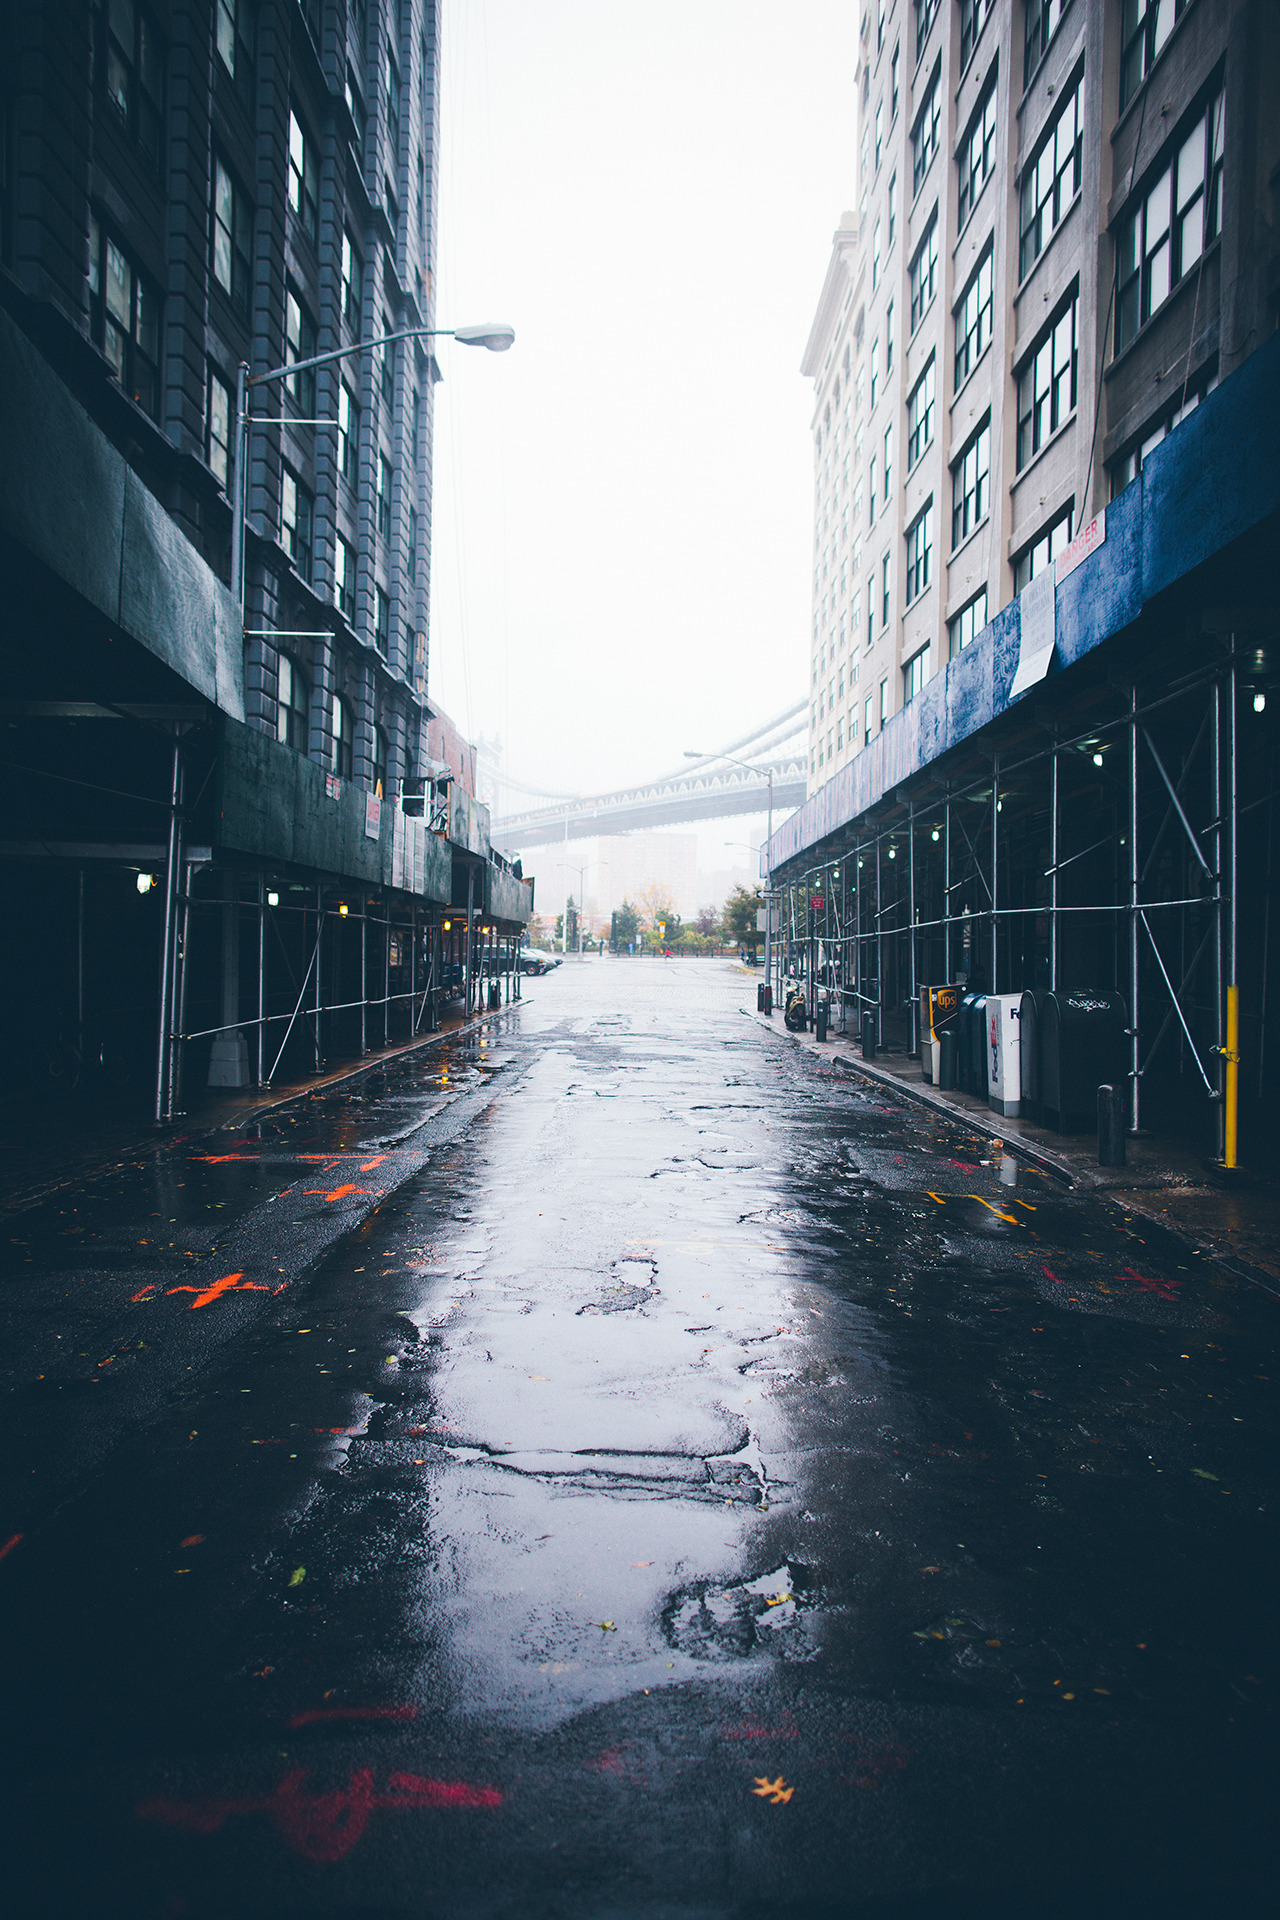 Dumbo, Brooklyn | 2012